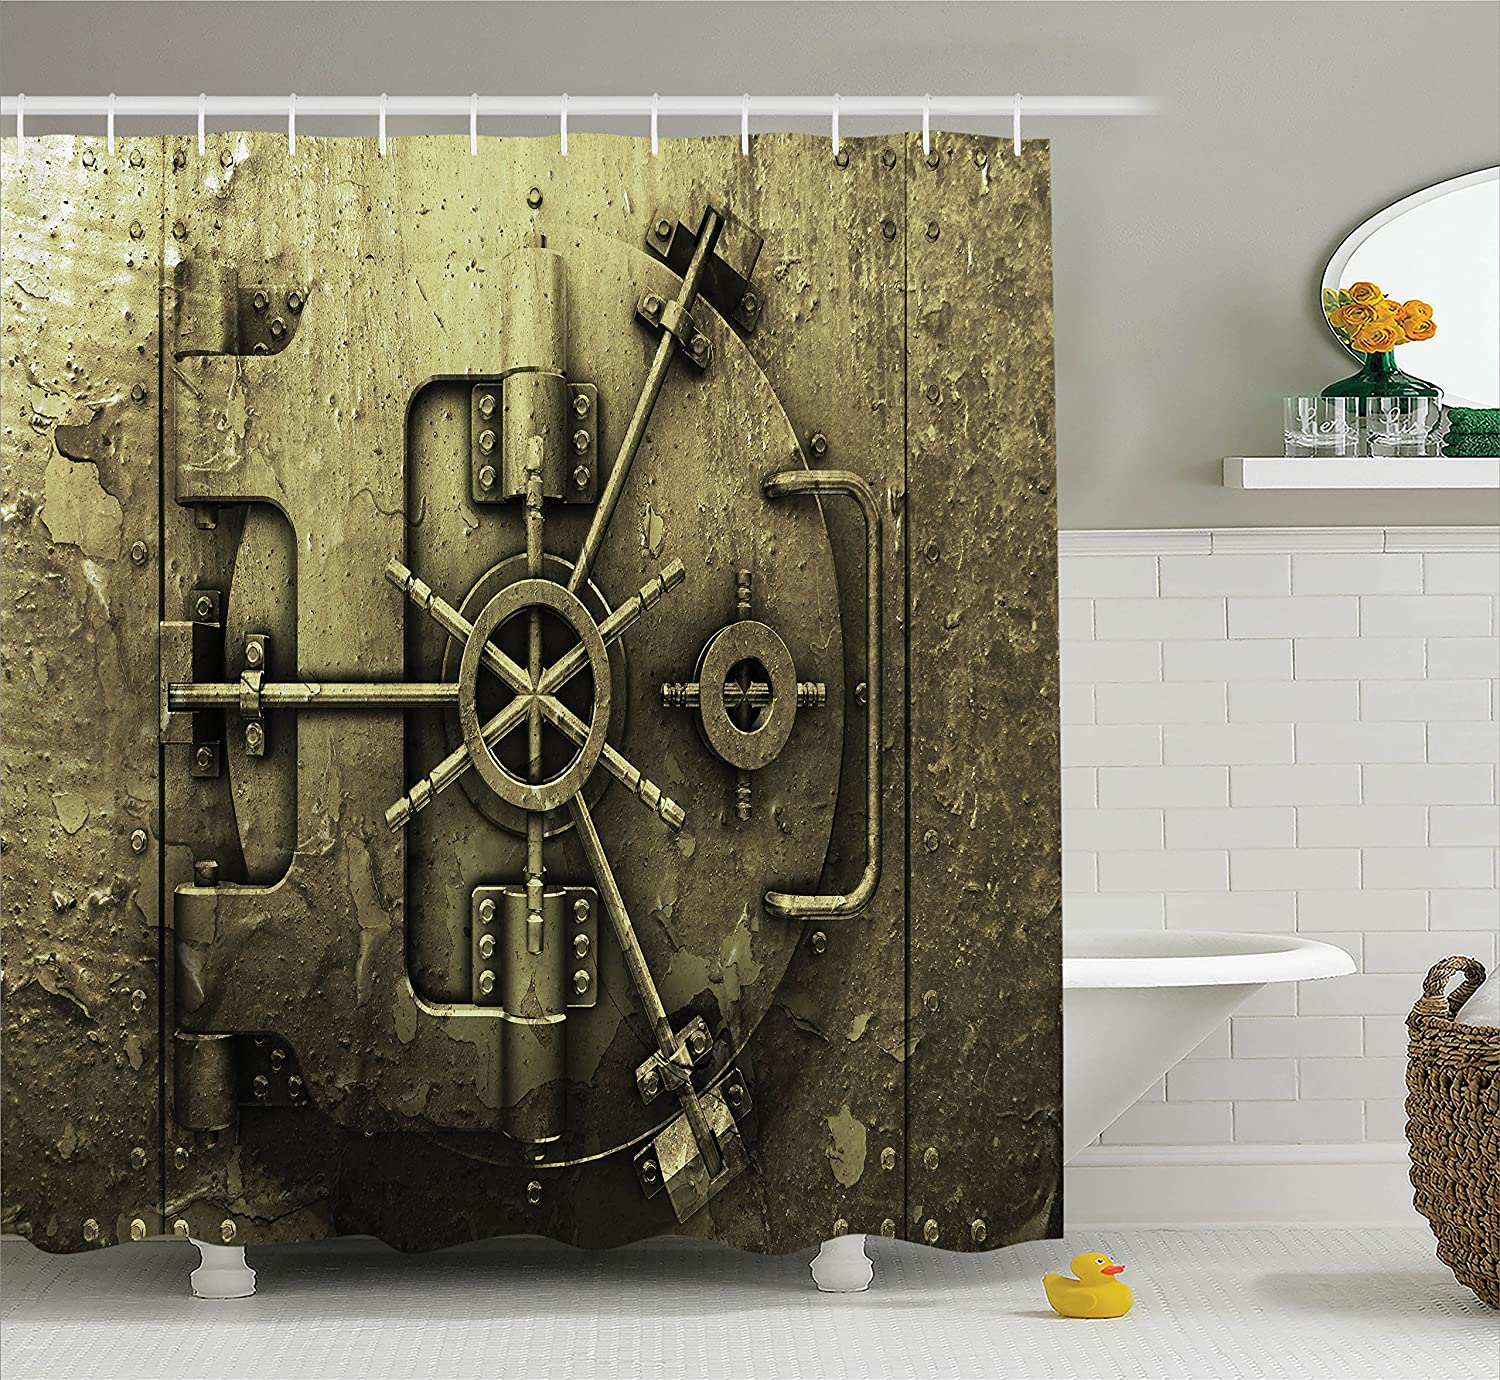 Polyester Fabric Bathroom Shower Curtain Set with Hooks Dark Olive Ambesonne Rustic Decor Collection Grunge Style Bank Vault Illustration Safe Secure Precious Treasure Protection Image Pritn